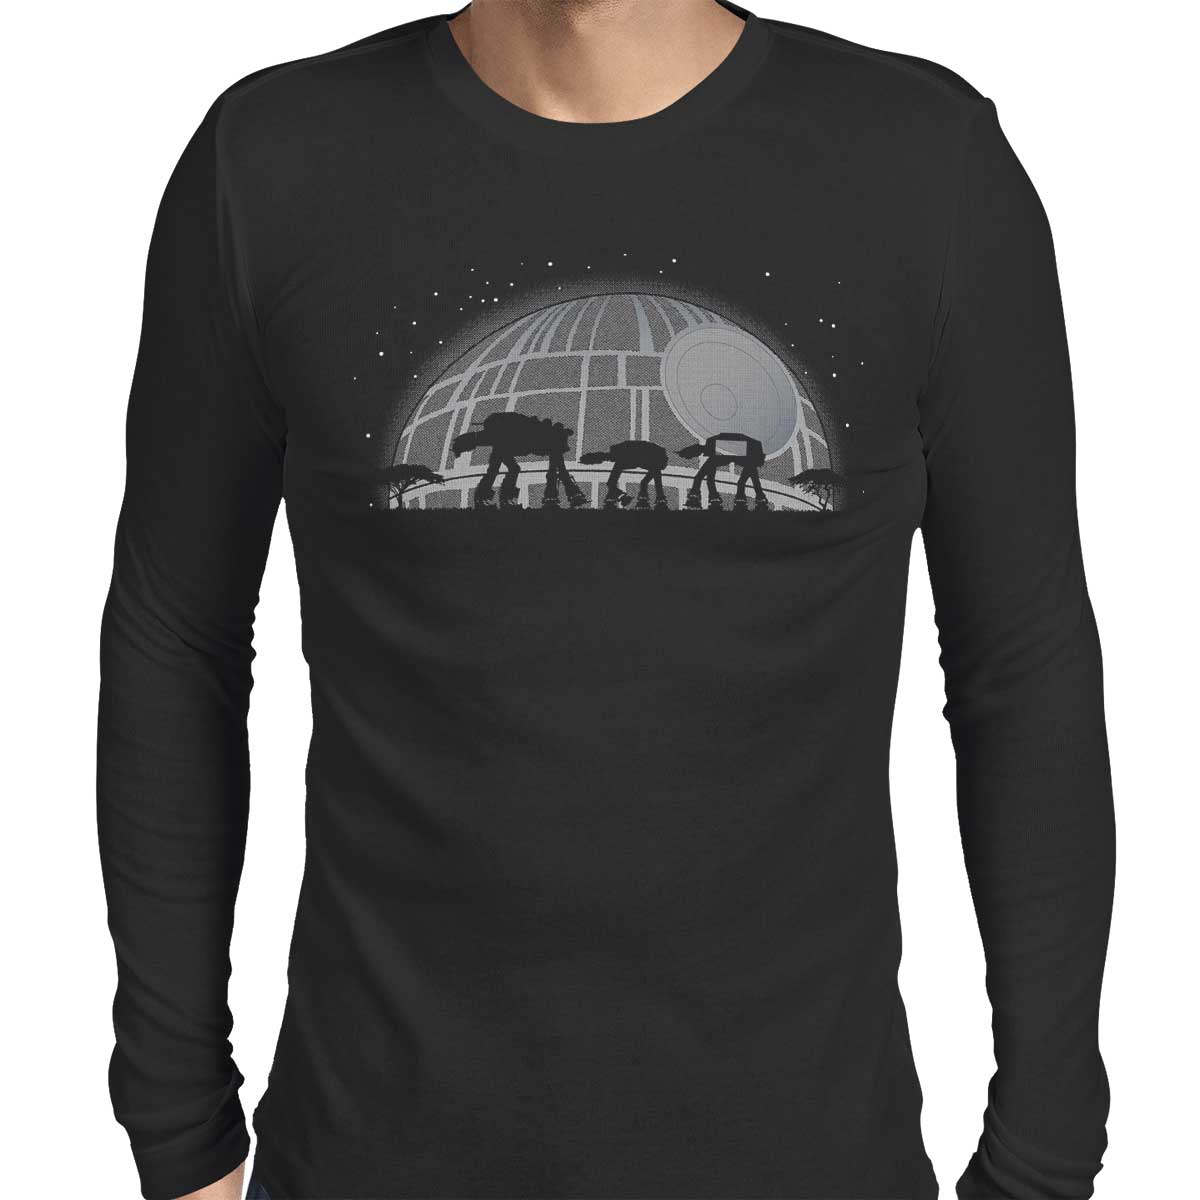 Star Wars AT-AT Tshirt